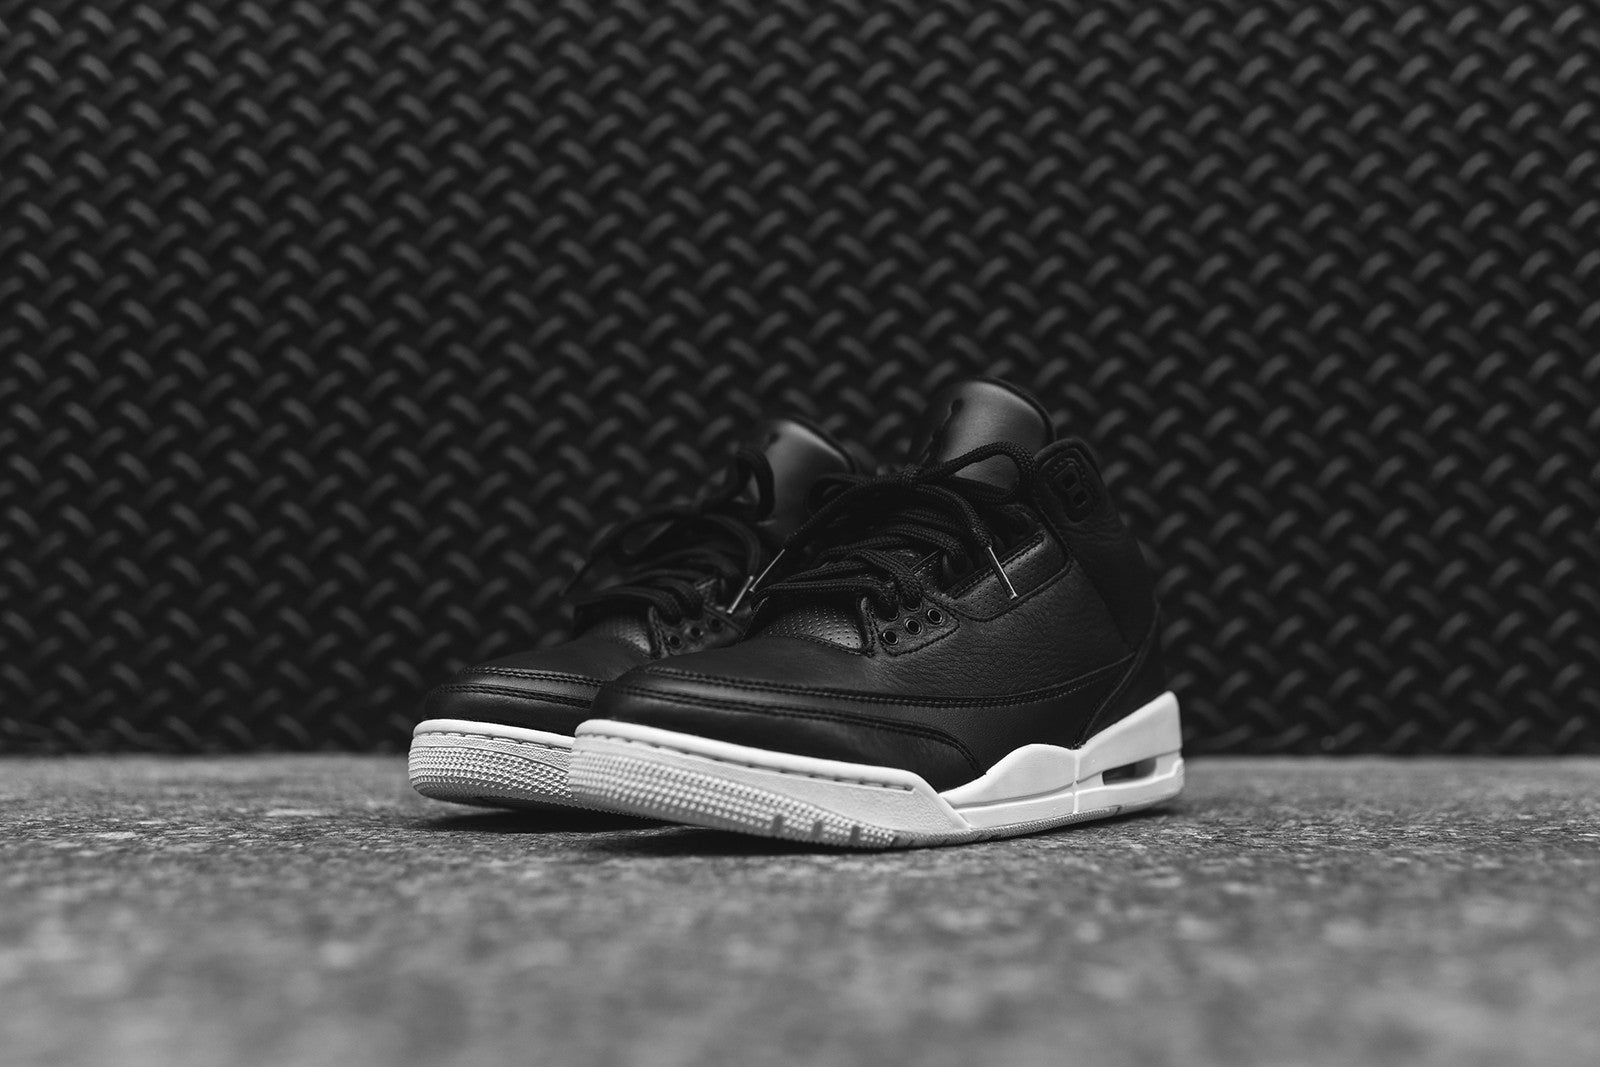 Nike Air GS Jordan III Retro - Black / White